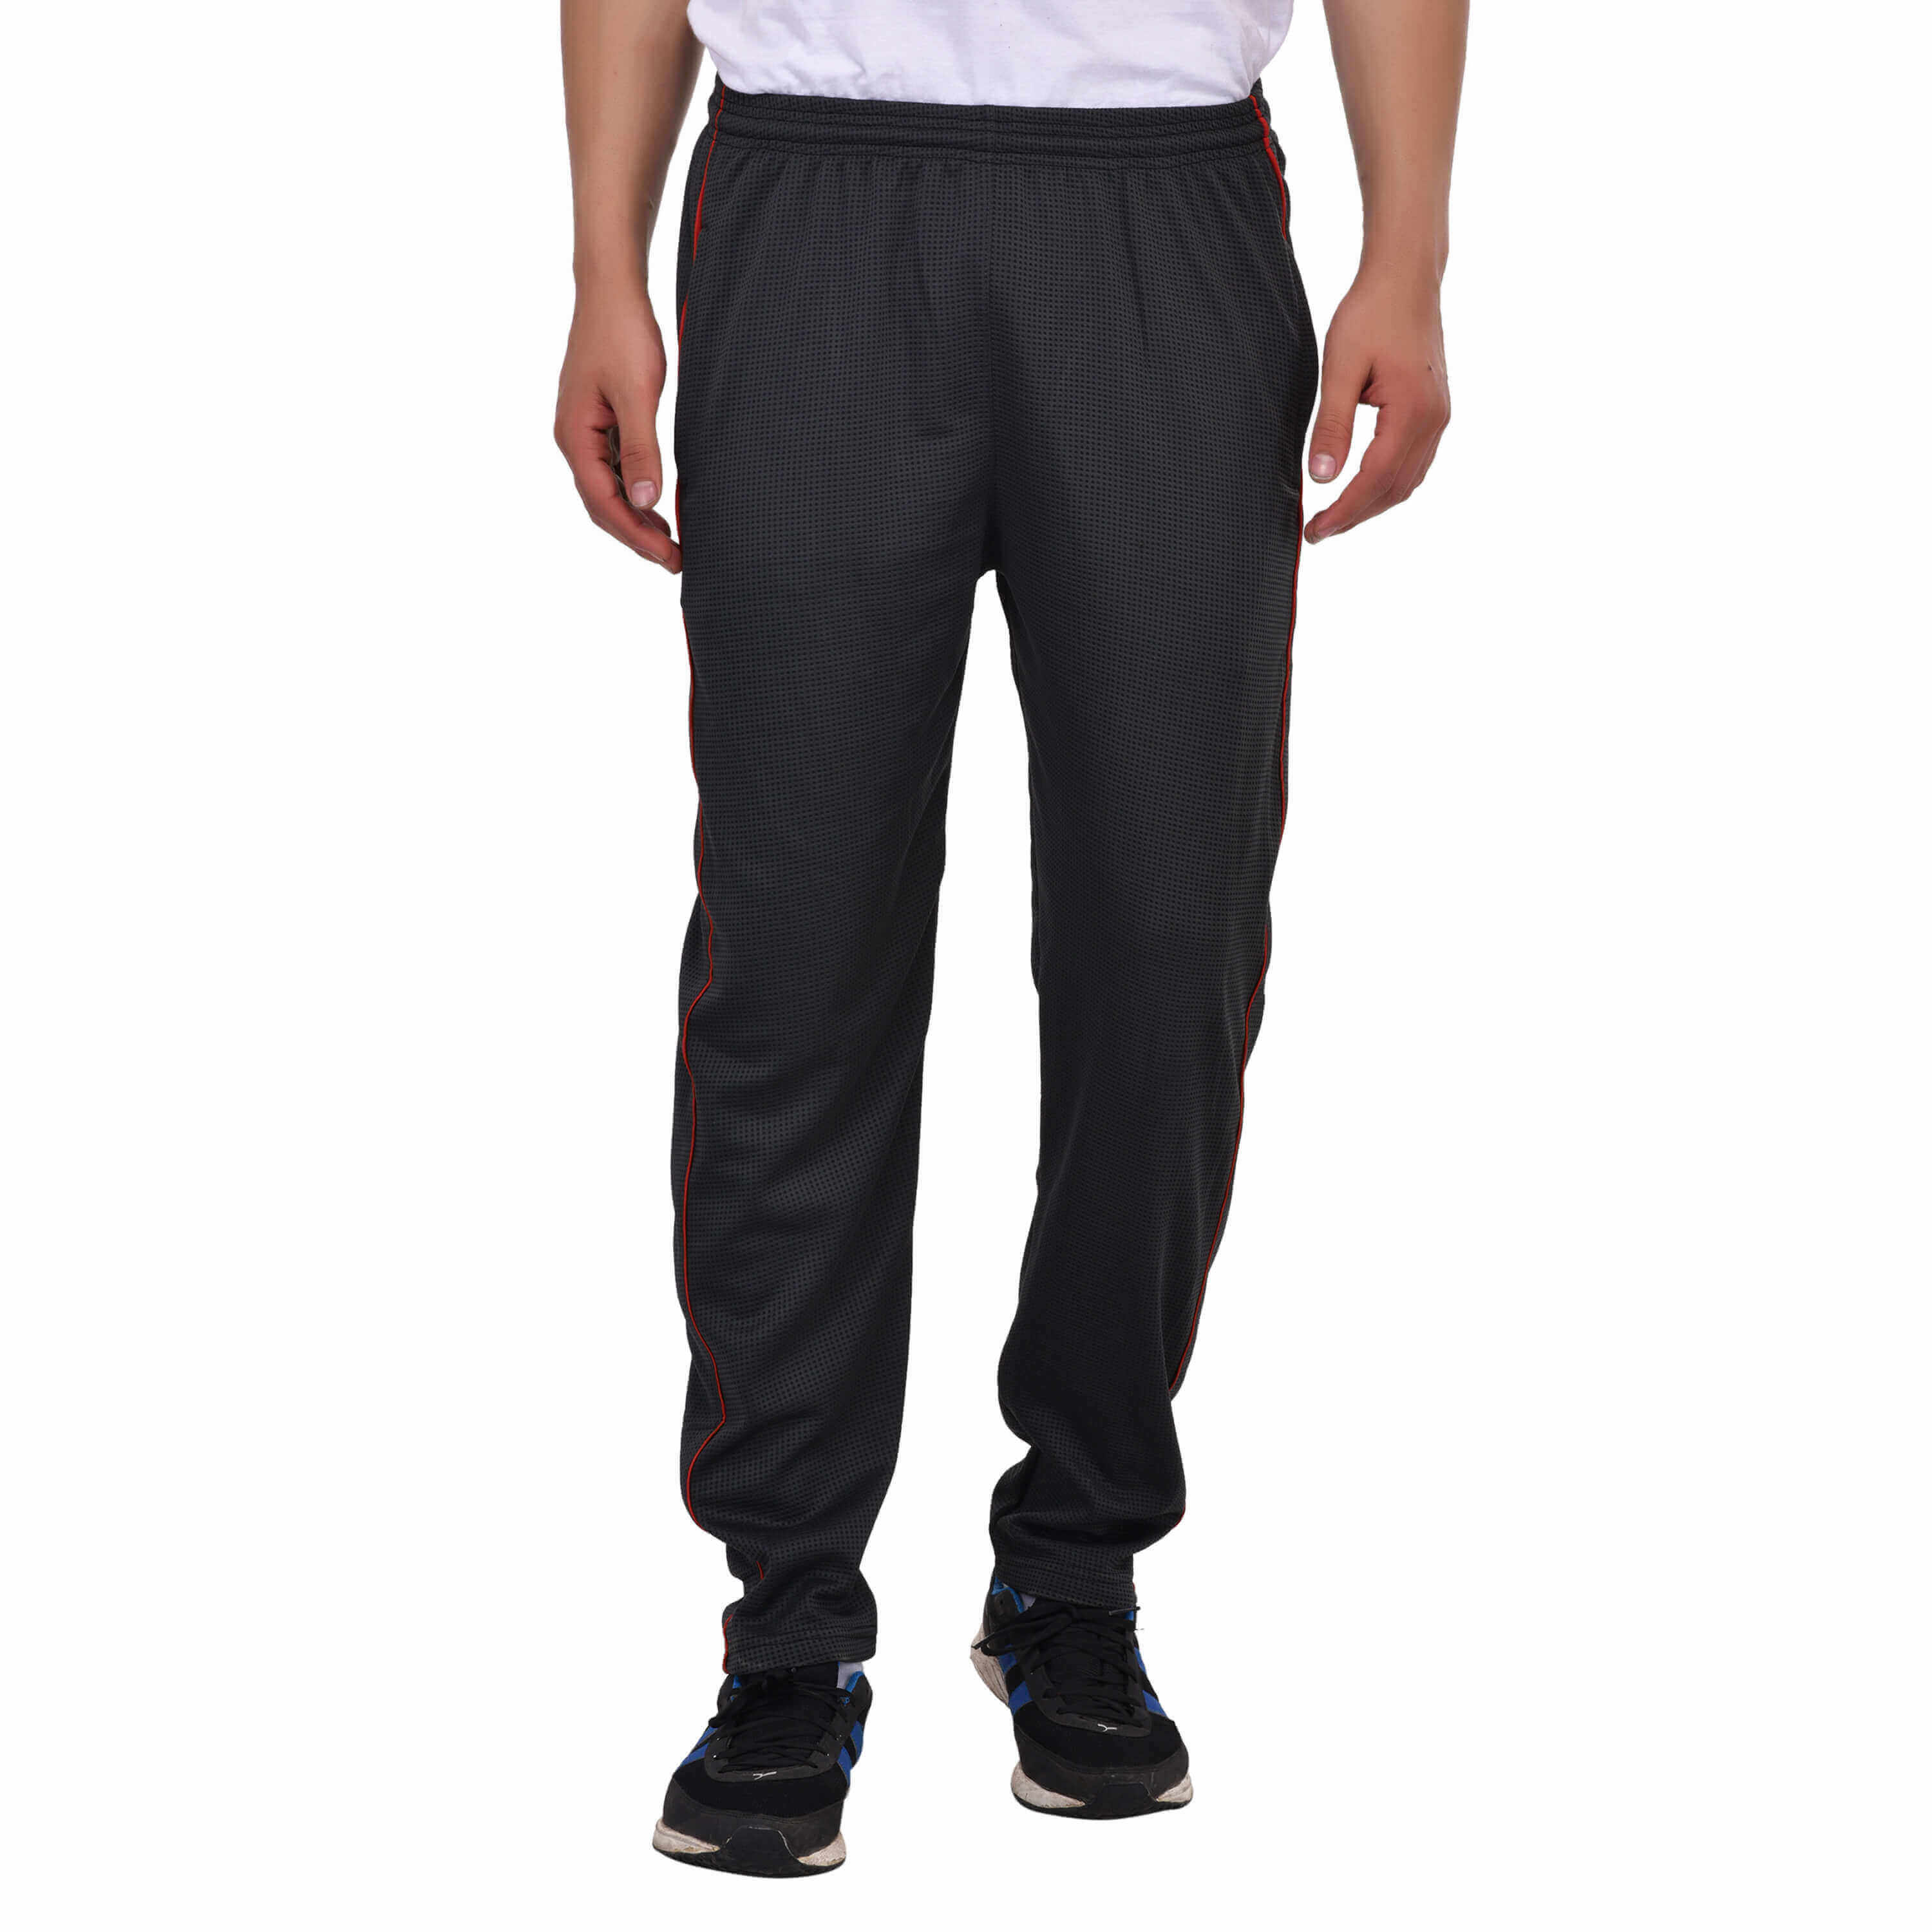 Gym Trousers Manufacturers in Cameroon